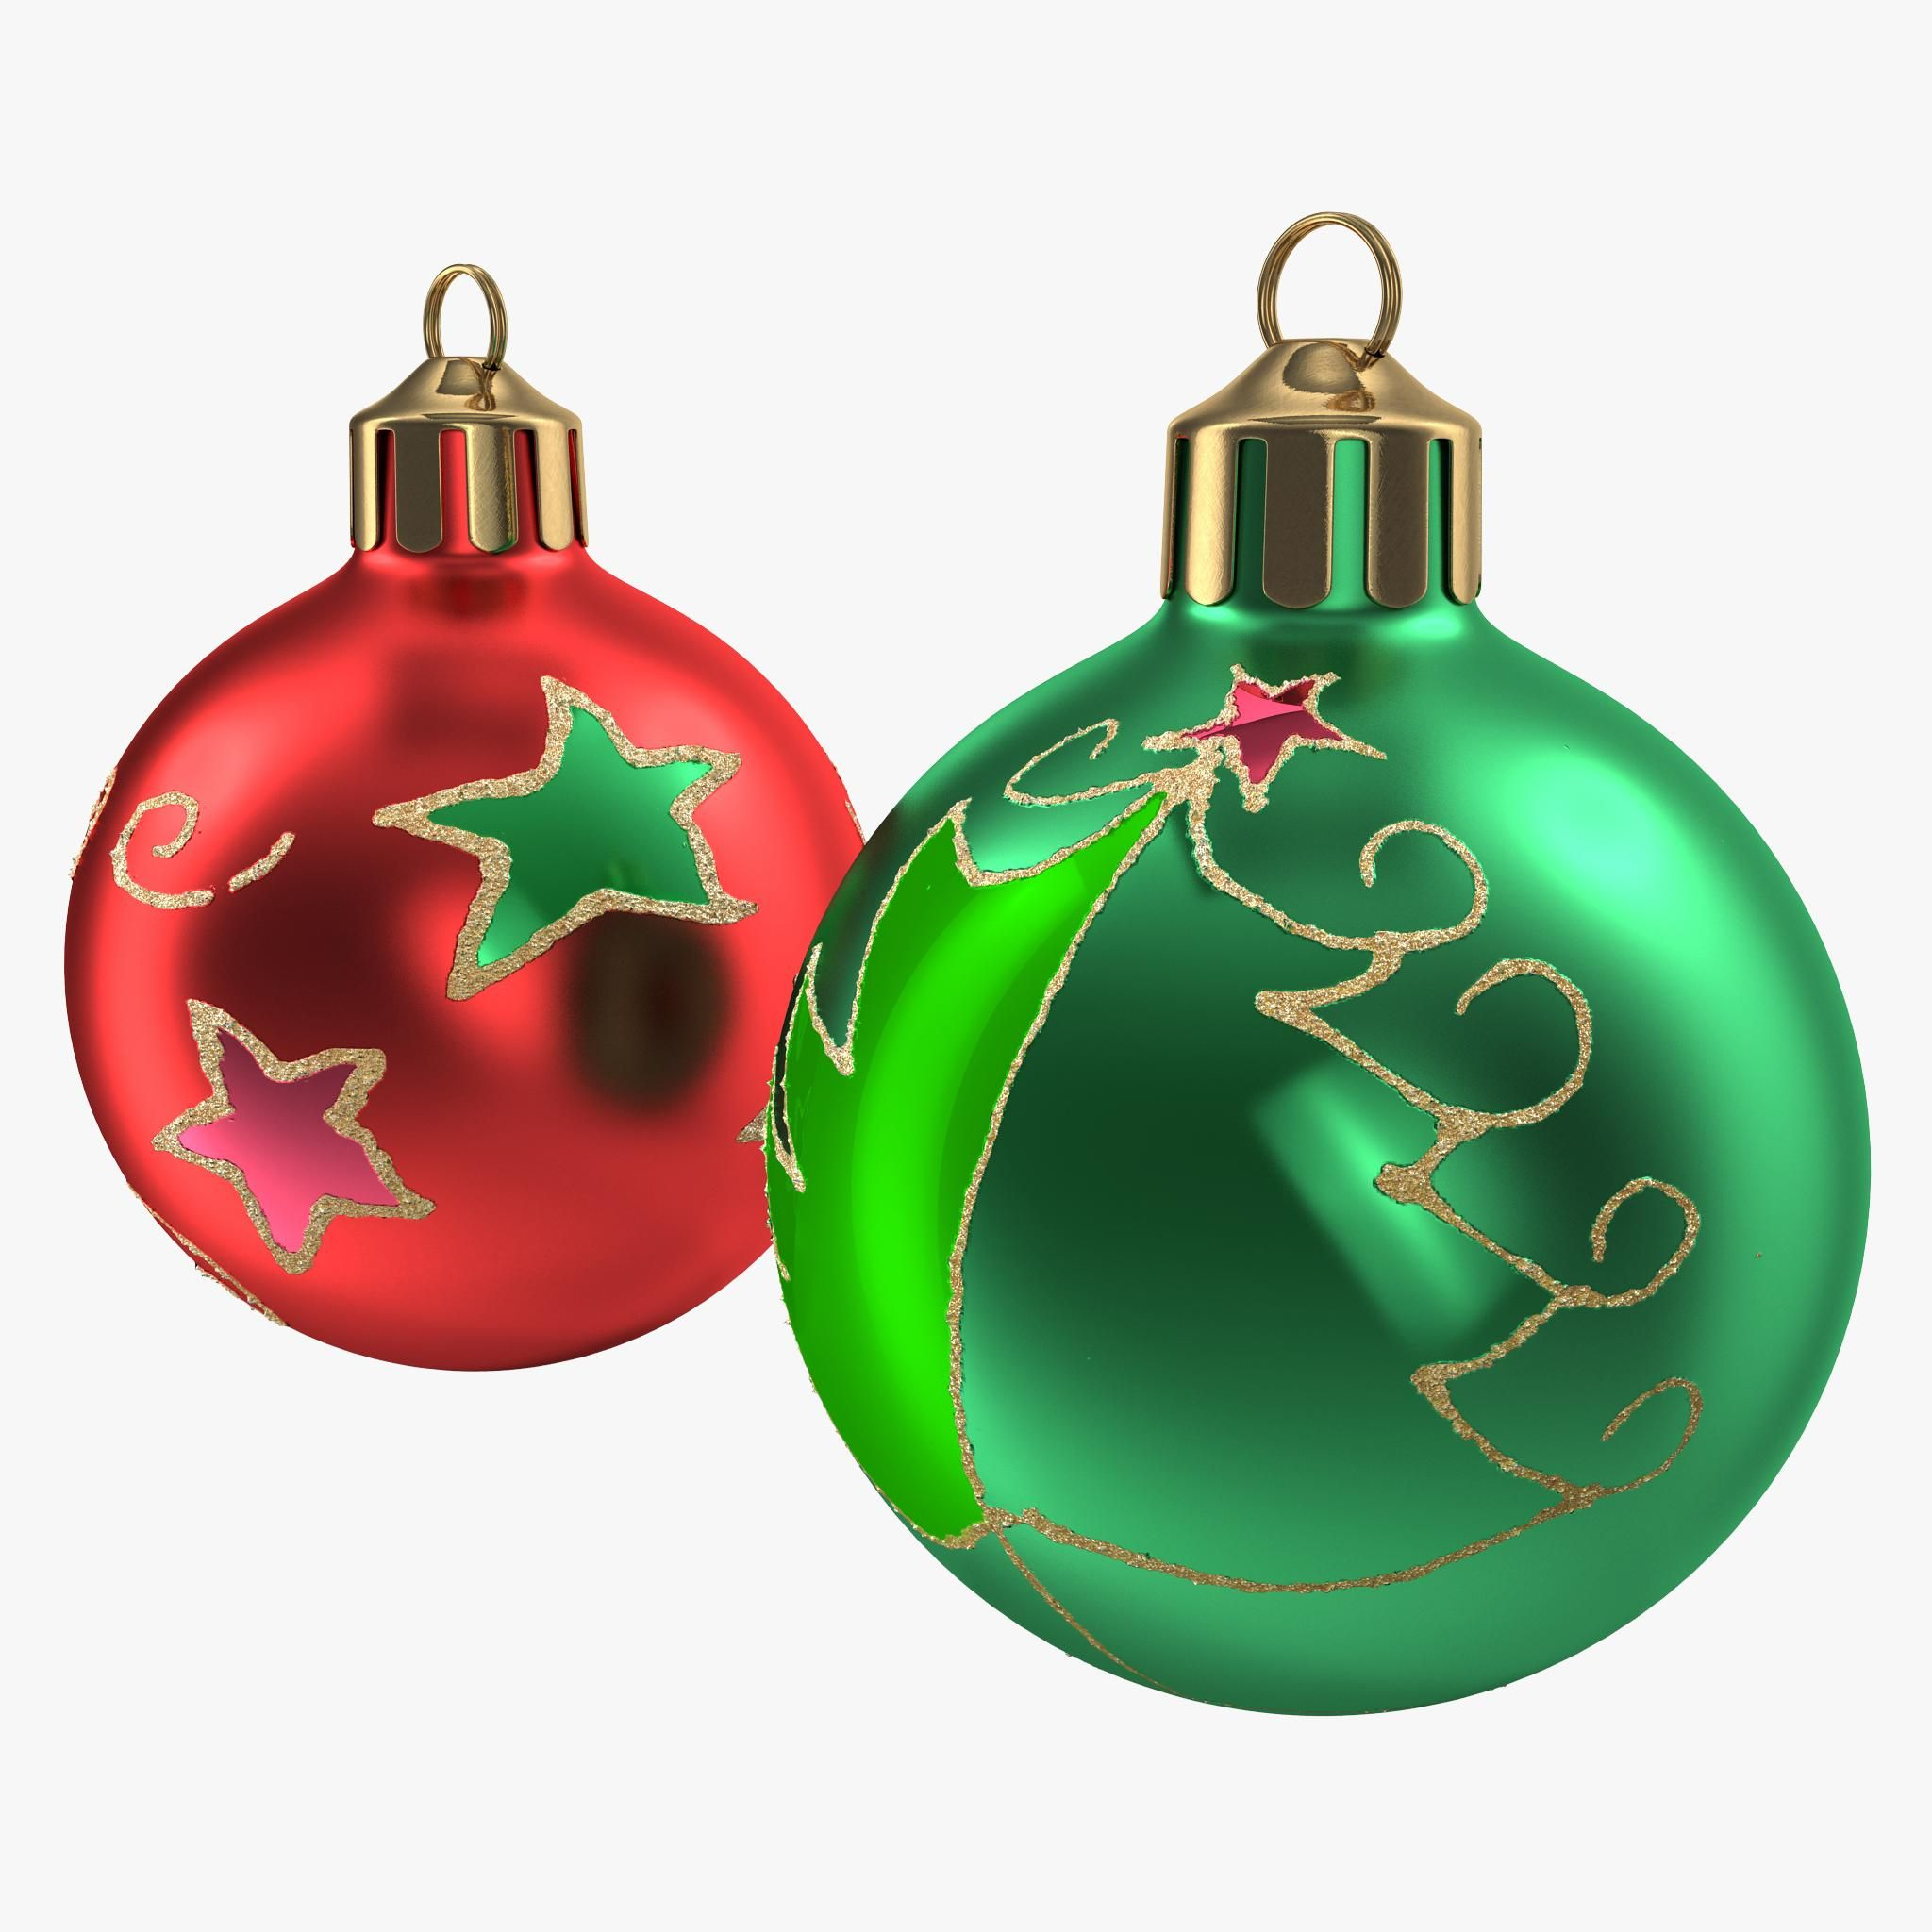 Christmas Ornament Balls 1 3d Model Ad Ornament Christmas Model Balls Christmas Ornaments Ornaments Christmas Bulbs